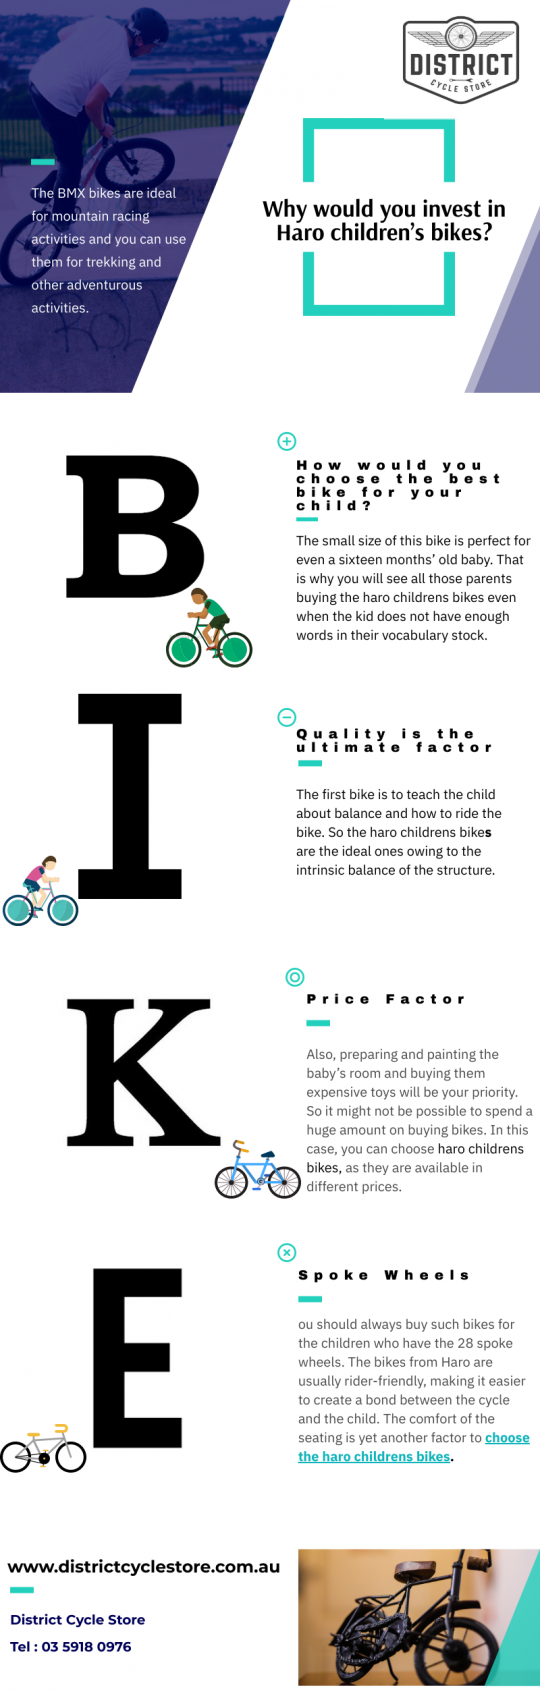 Why would you invest in Haro children's bikes?